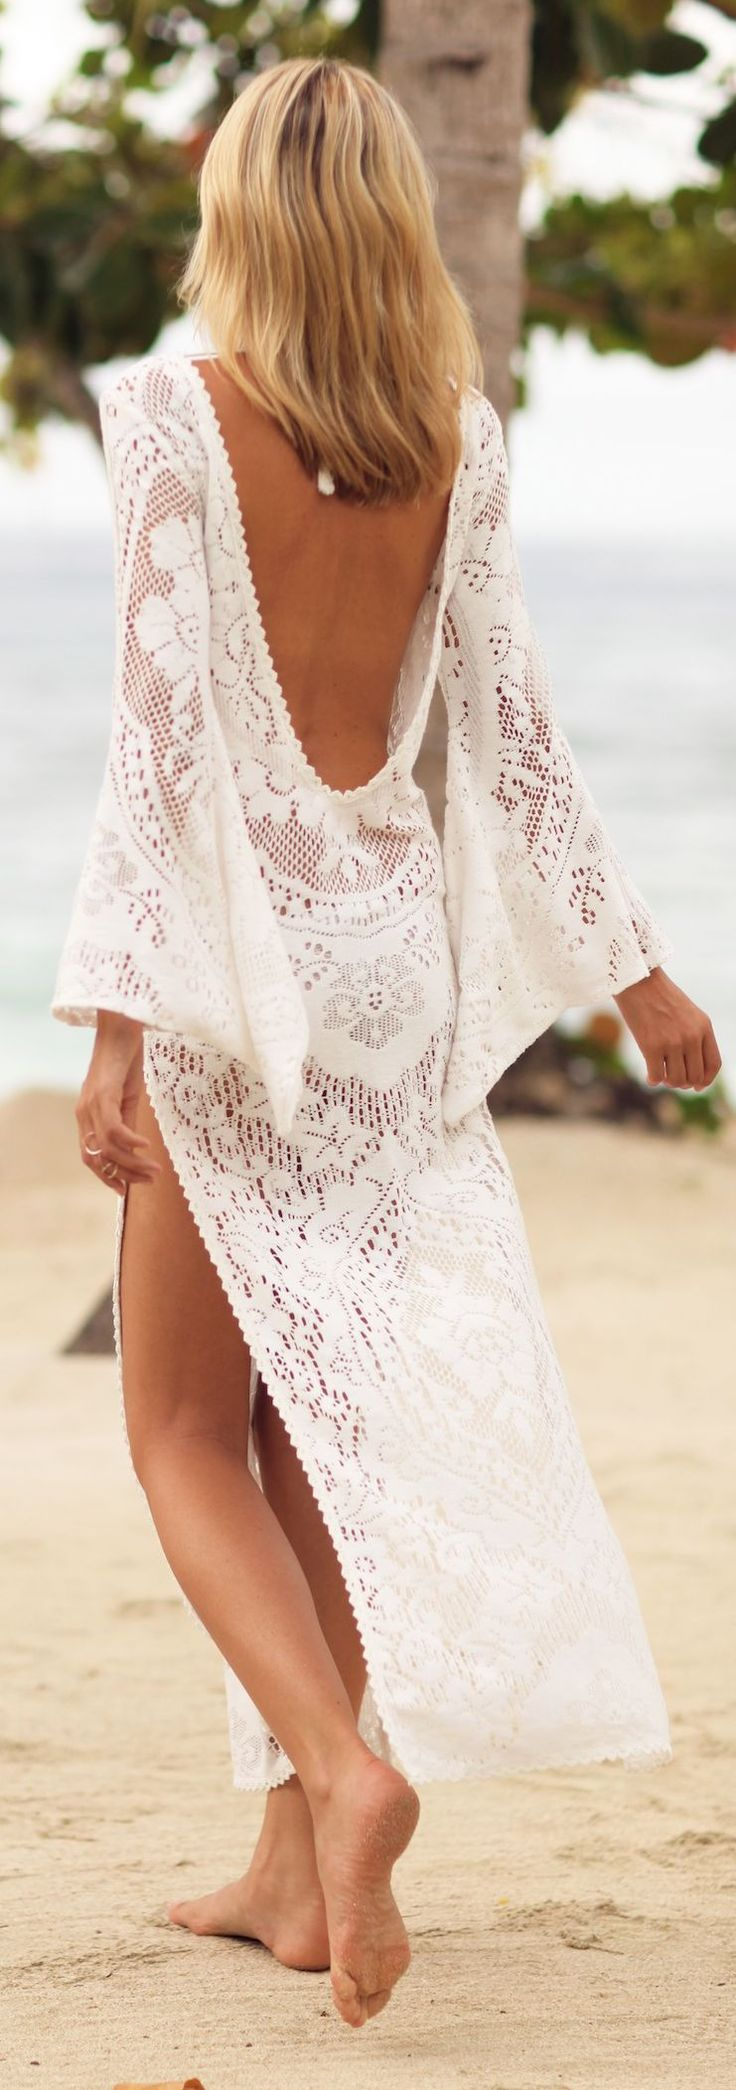 Probably the perfect wedding dress. bathing suit and cover up